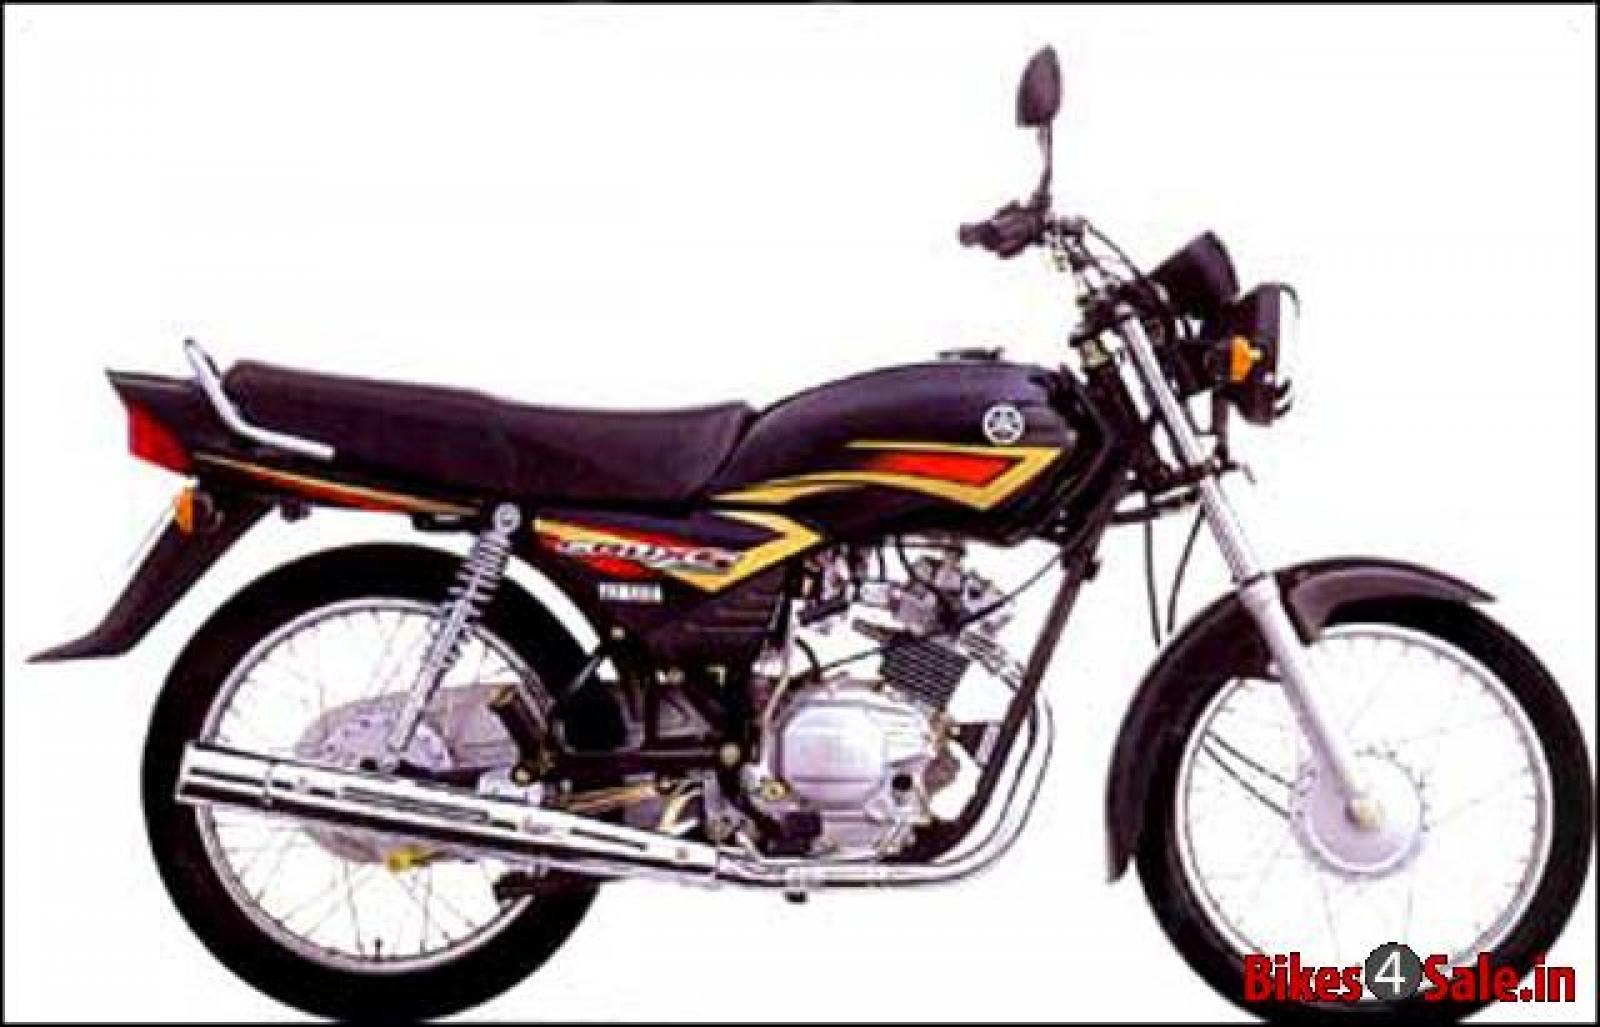 Yamaha crux photo - 4